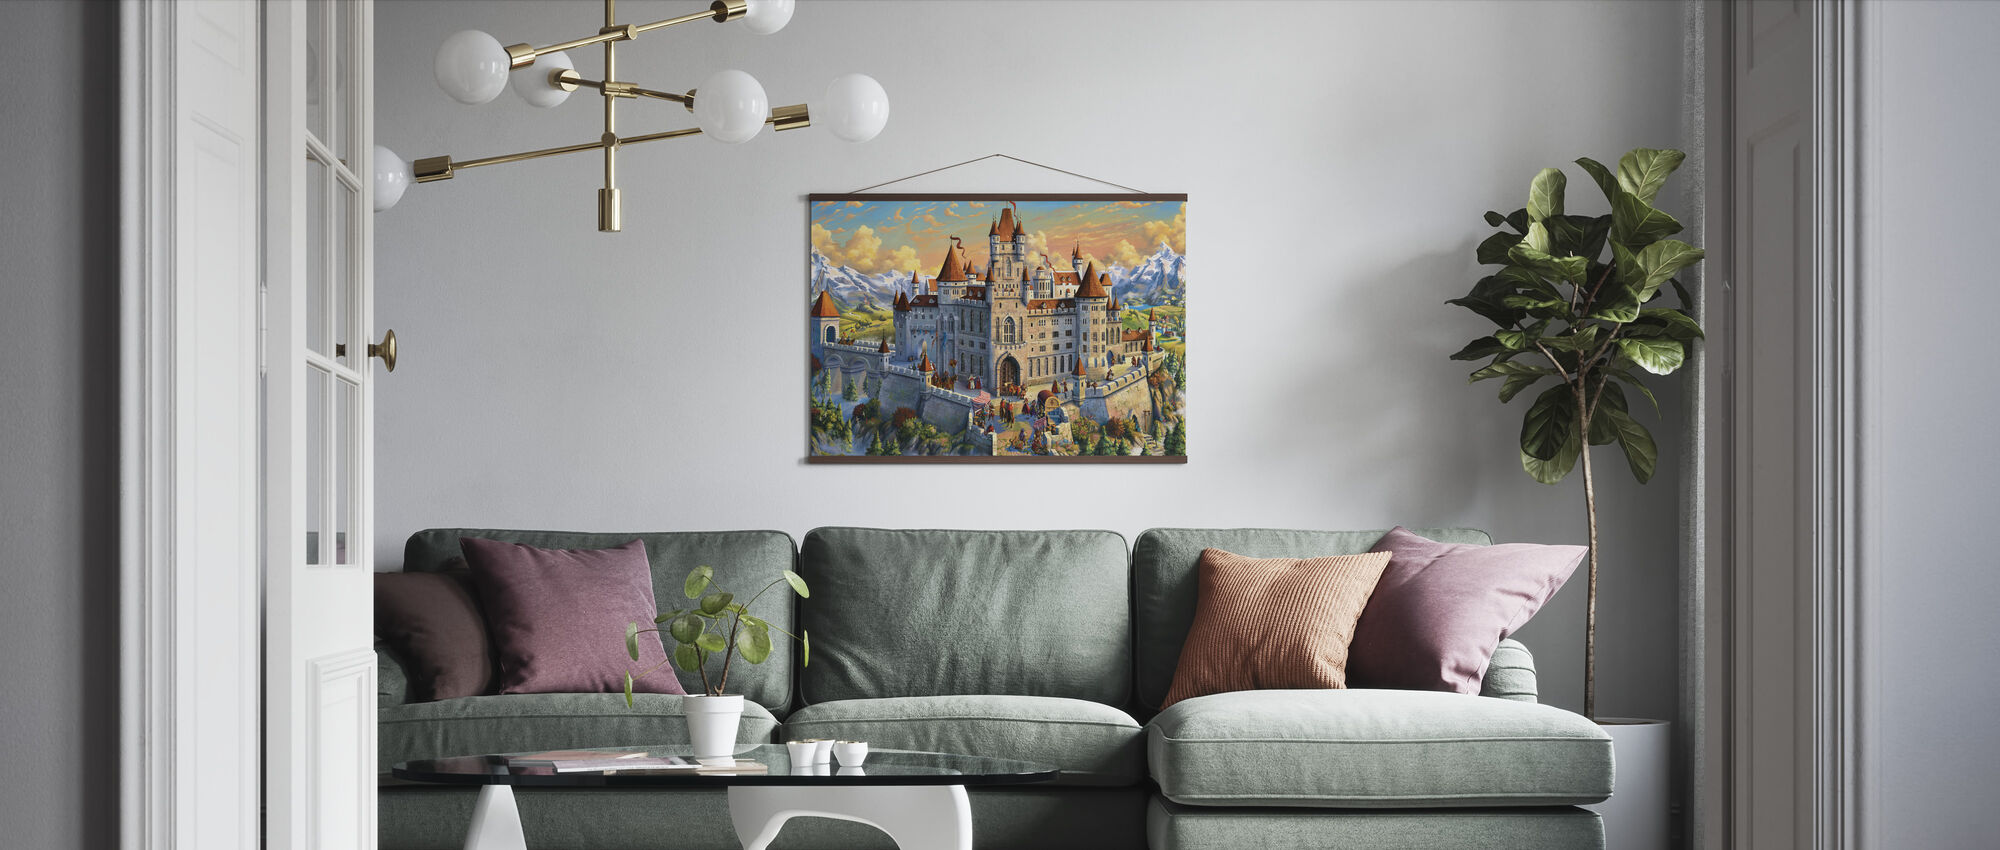 Magnificant Castle - Poster - Living Room